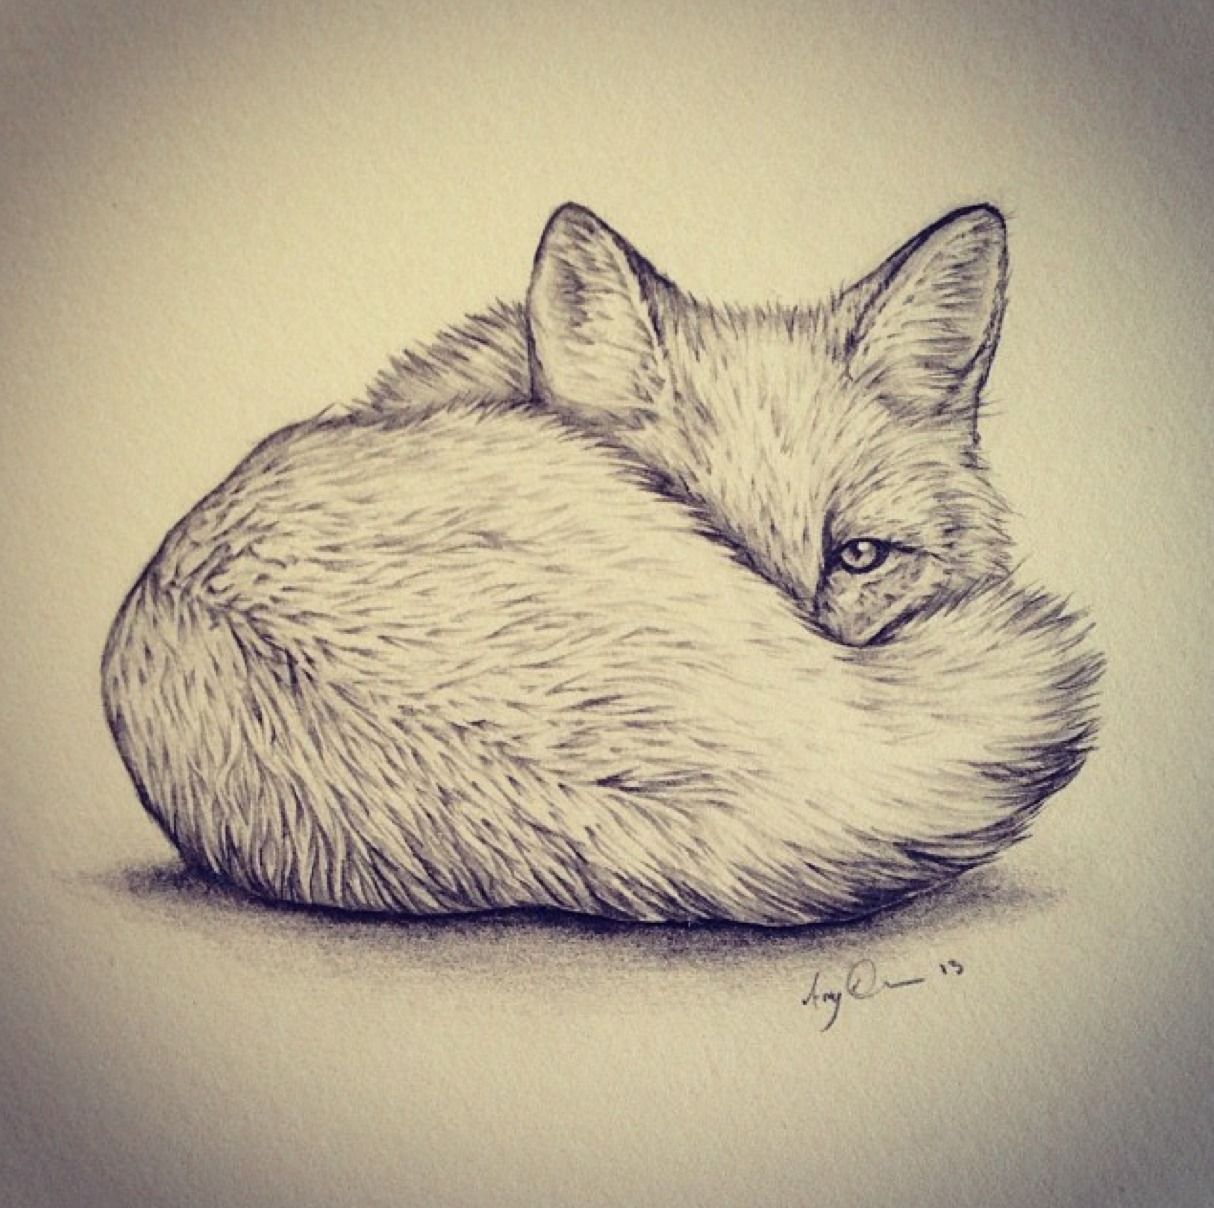 I really want a fox tattoo on my ribs one day. And it would probably look something like this. I love it so much!